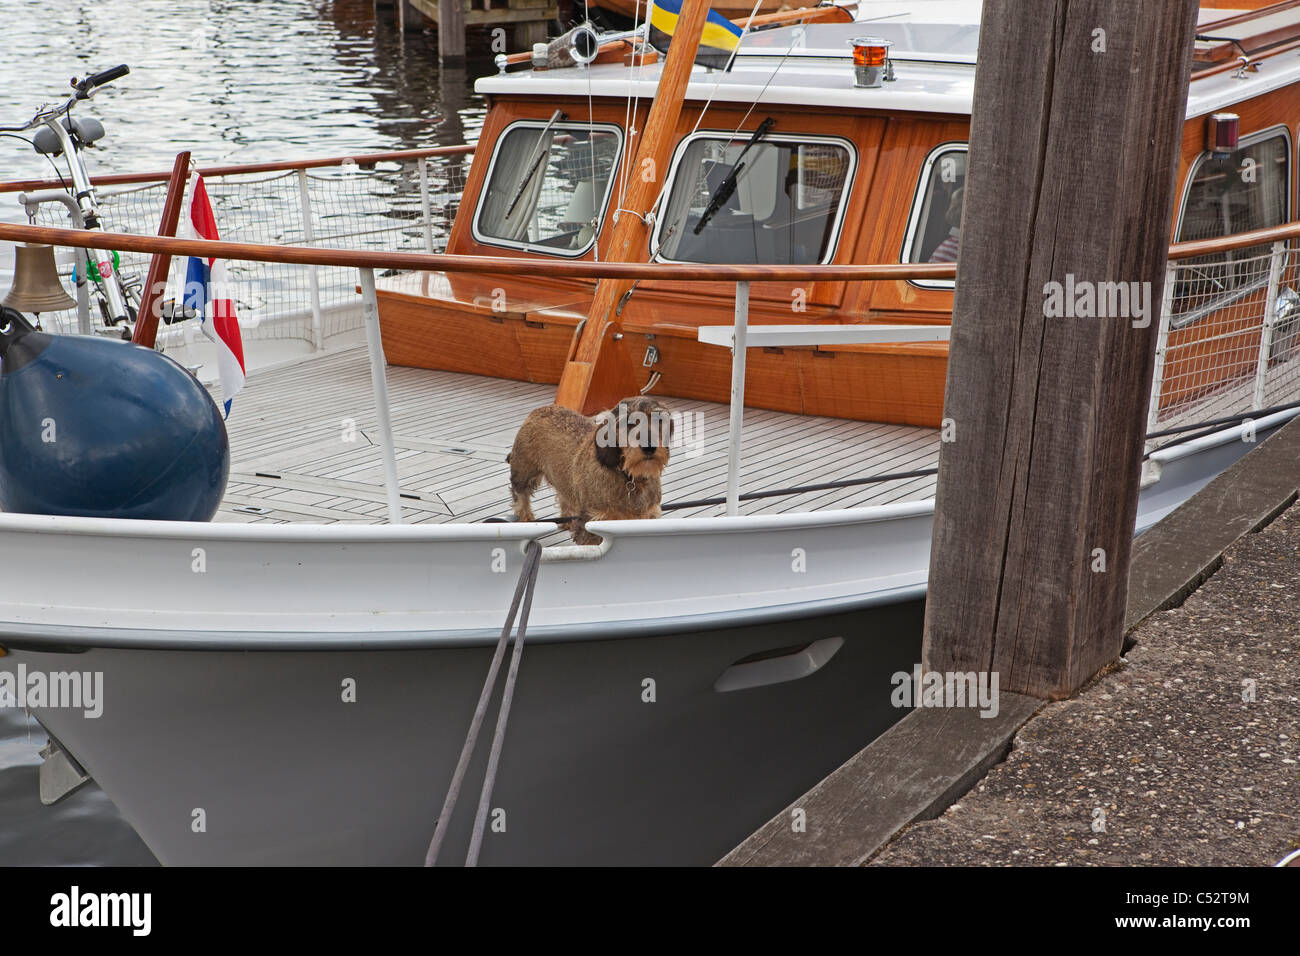 Dog on boat in Elburg Harbour - Stock Image